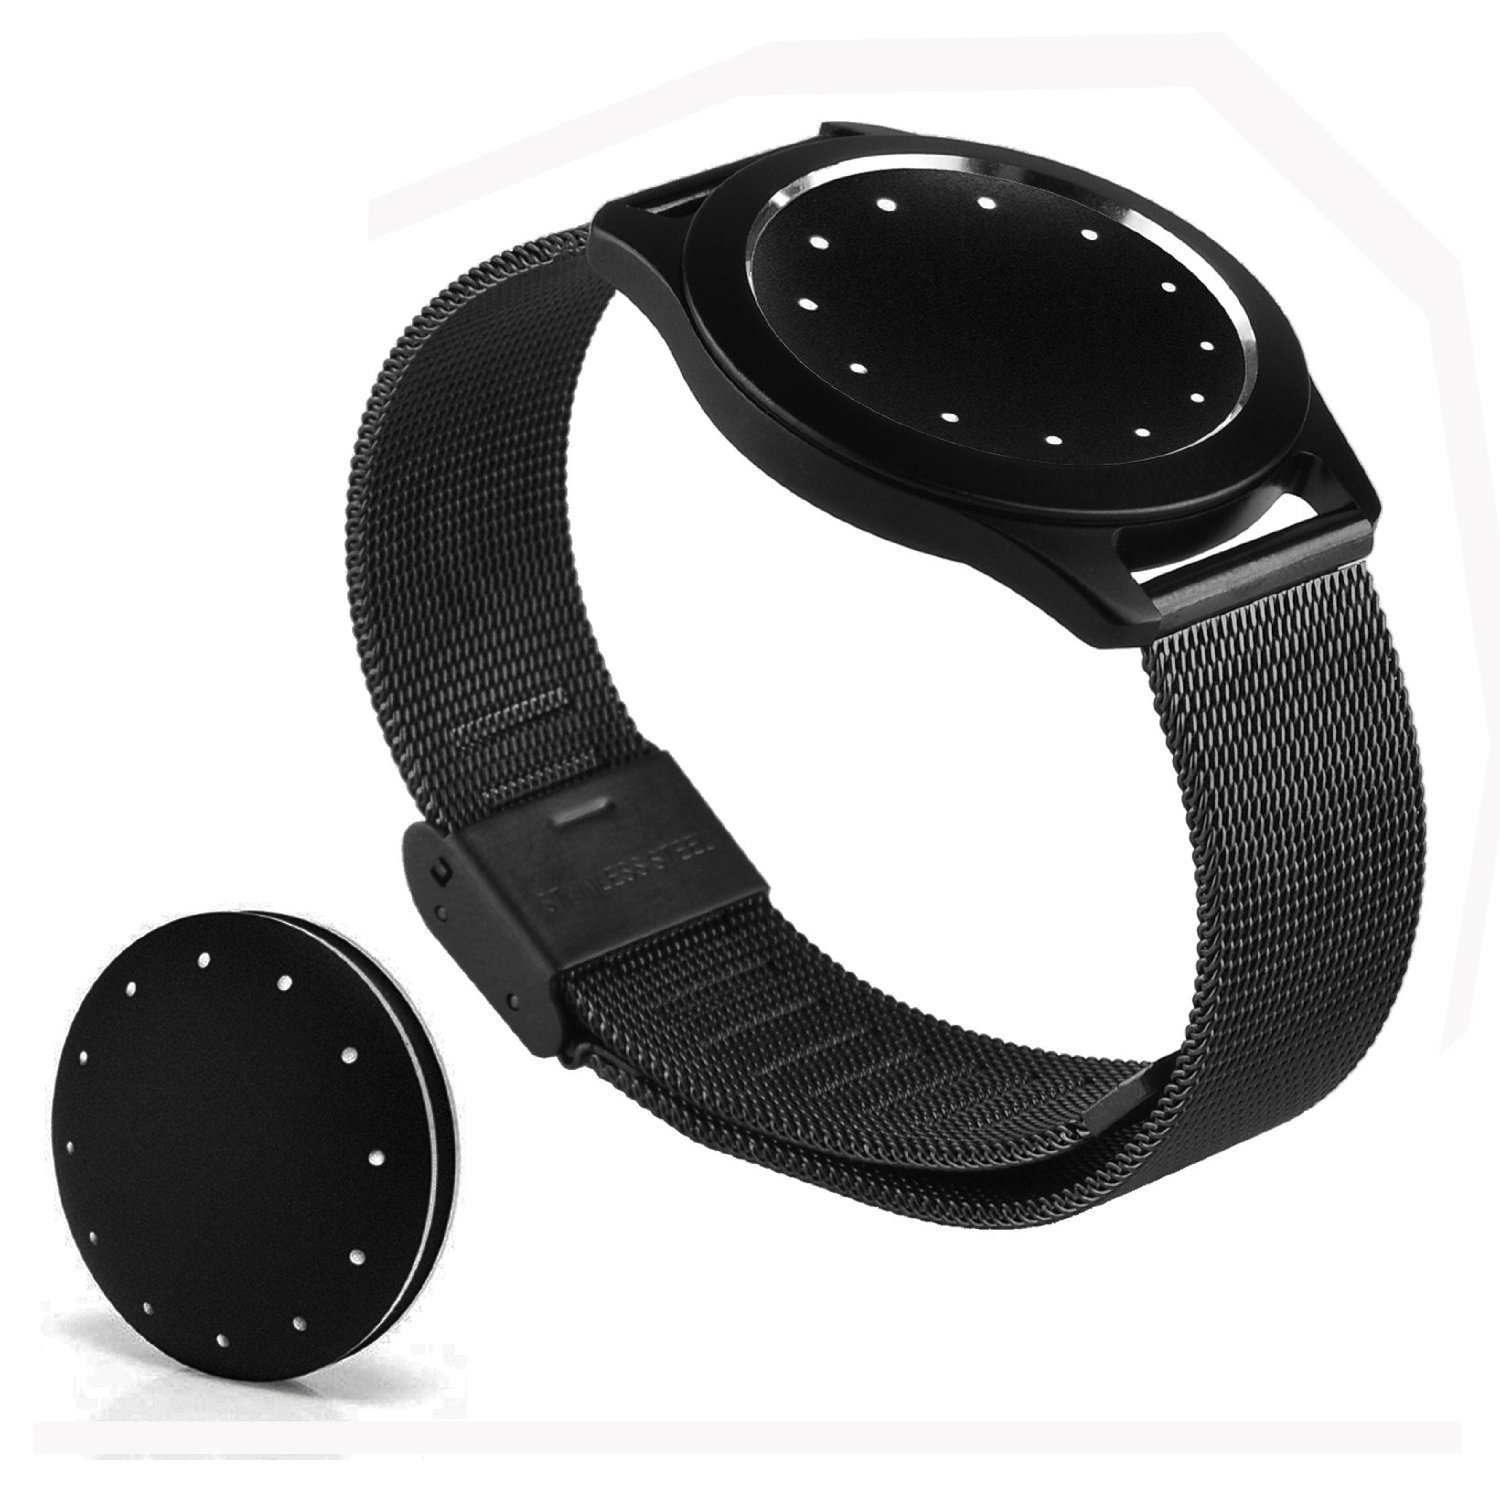 Misfit Shine Band Probrother® Milanese Strap Original with Buckle for Activity and Sleep Monitor Misfit Shine Watchbands Smart Watch Watchbands Black